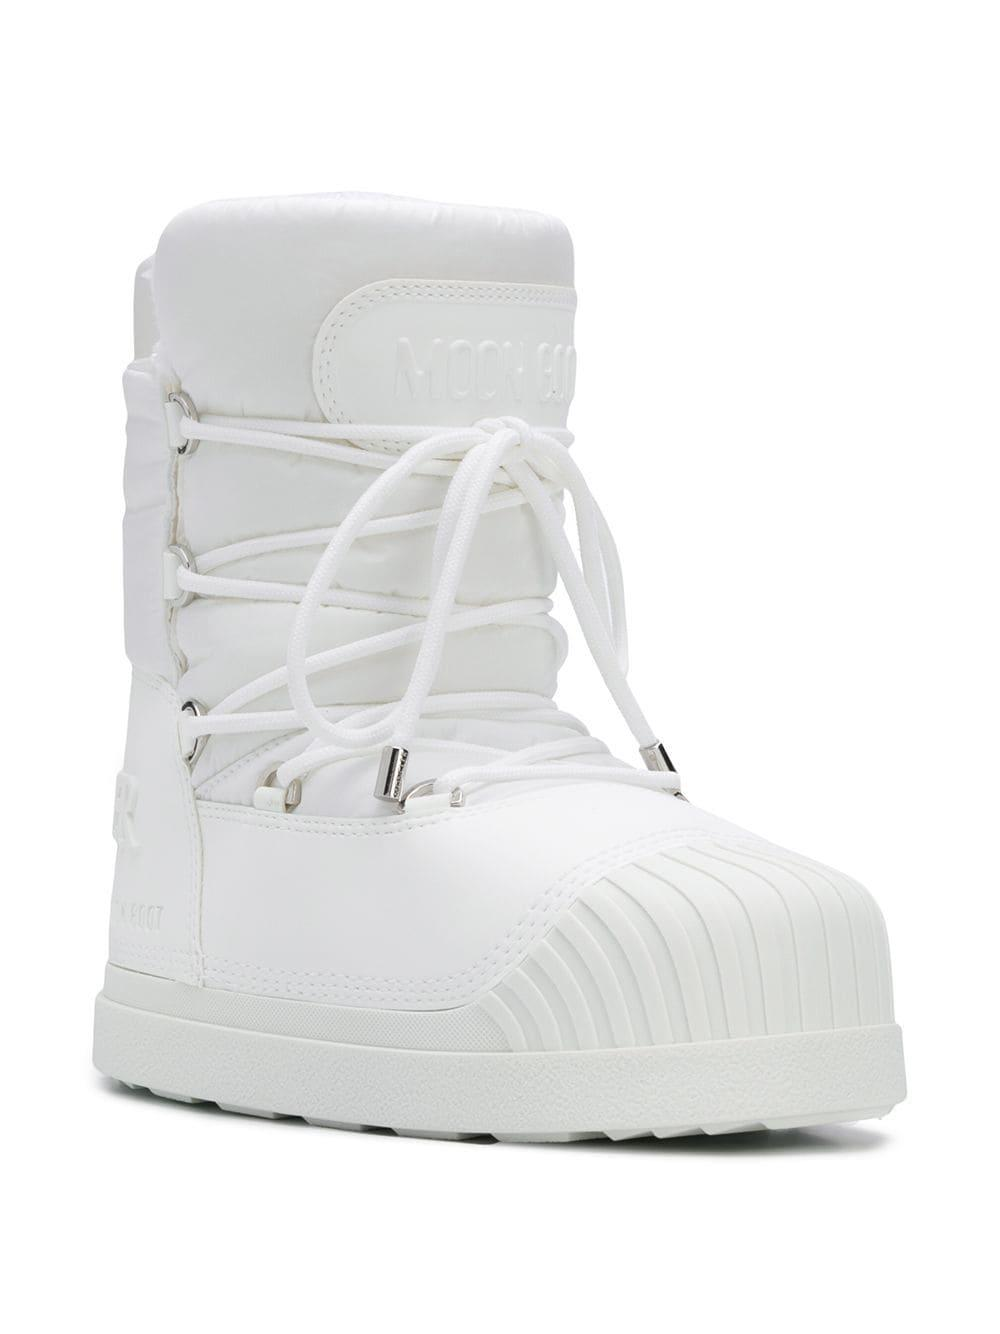 141fc2eebf89 Lyst - Moncler Lace-up Moon Boots in White - Save 23%